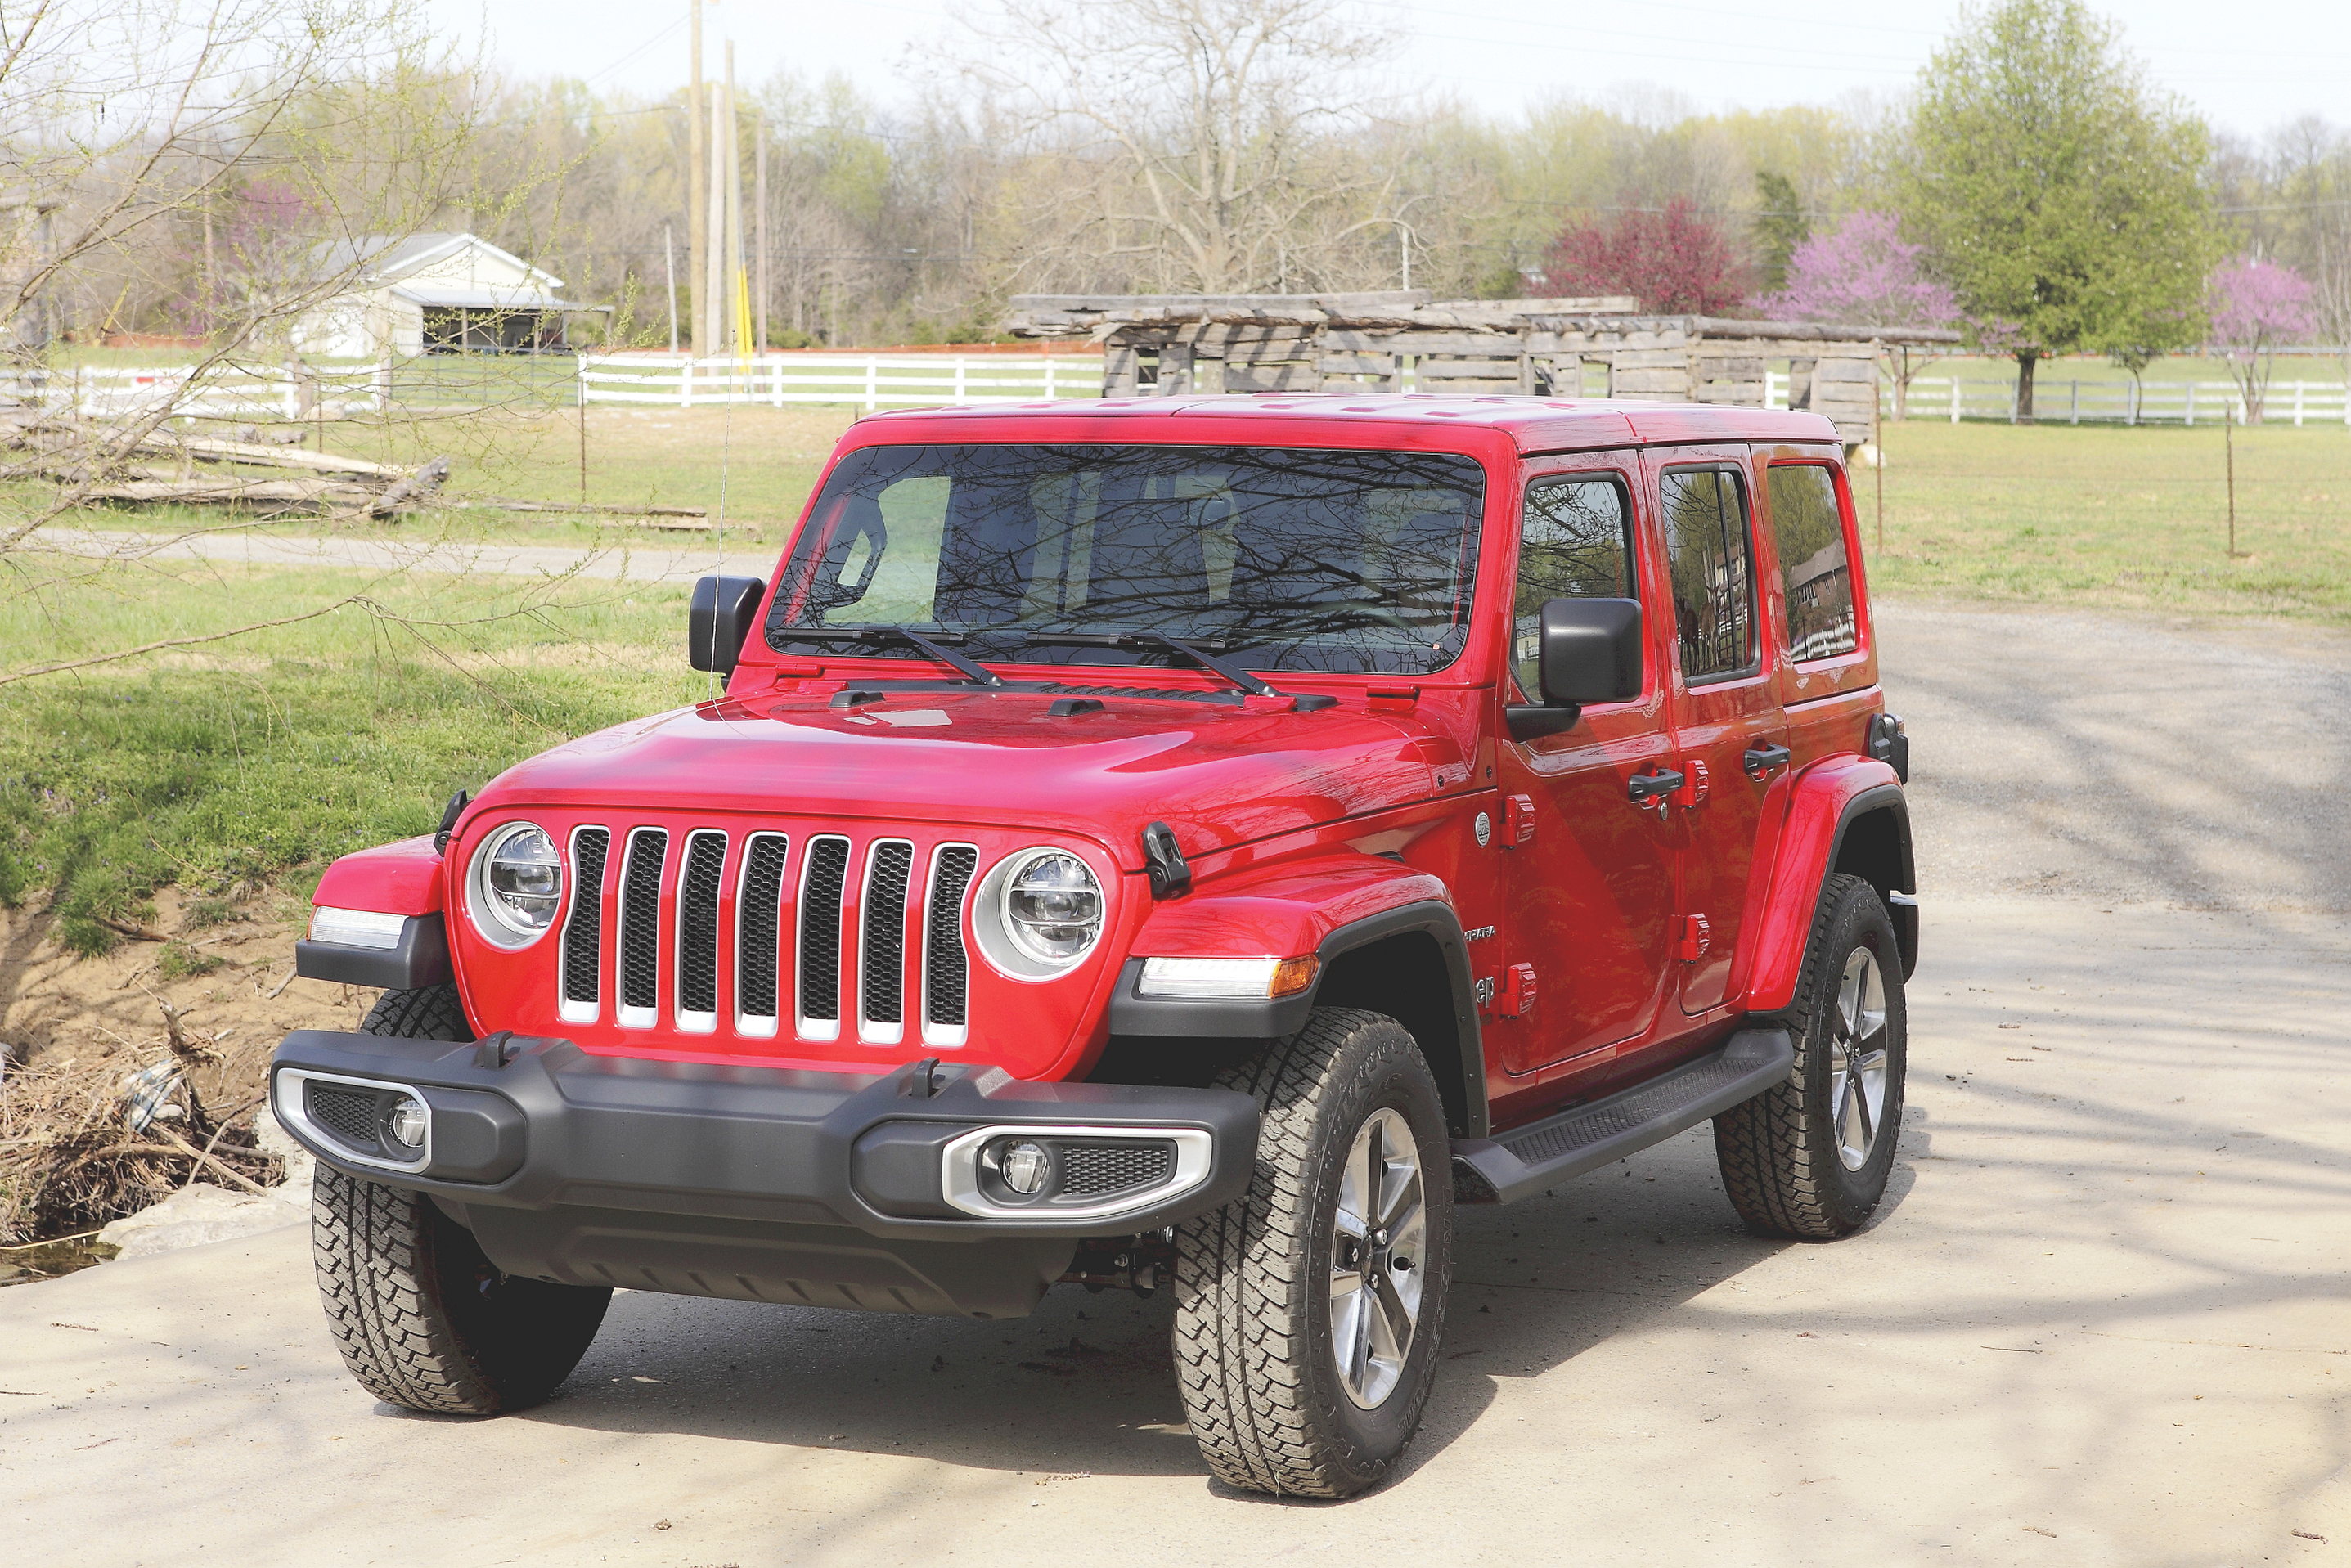 Jeep Wranglers available in Nashville, TN at Rockie Williams' Premier Dodge Chrysler Jeep Ram